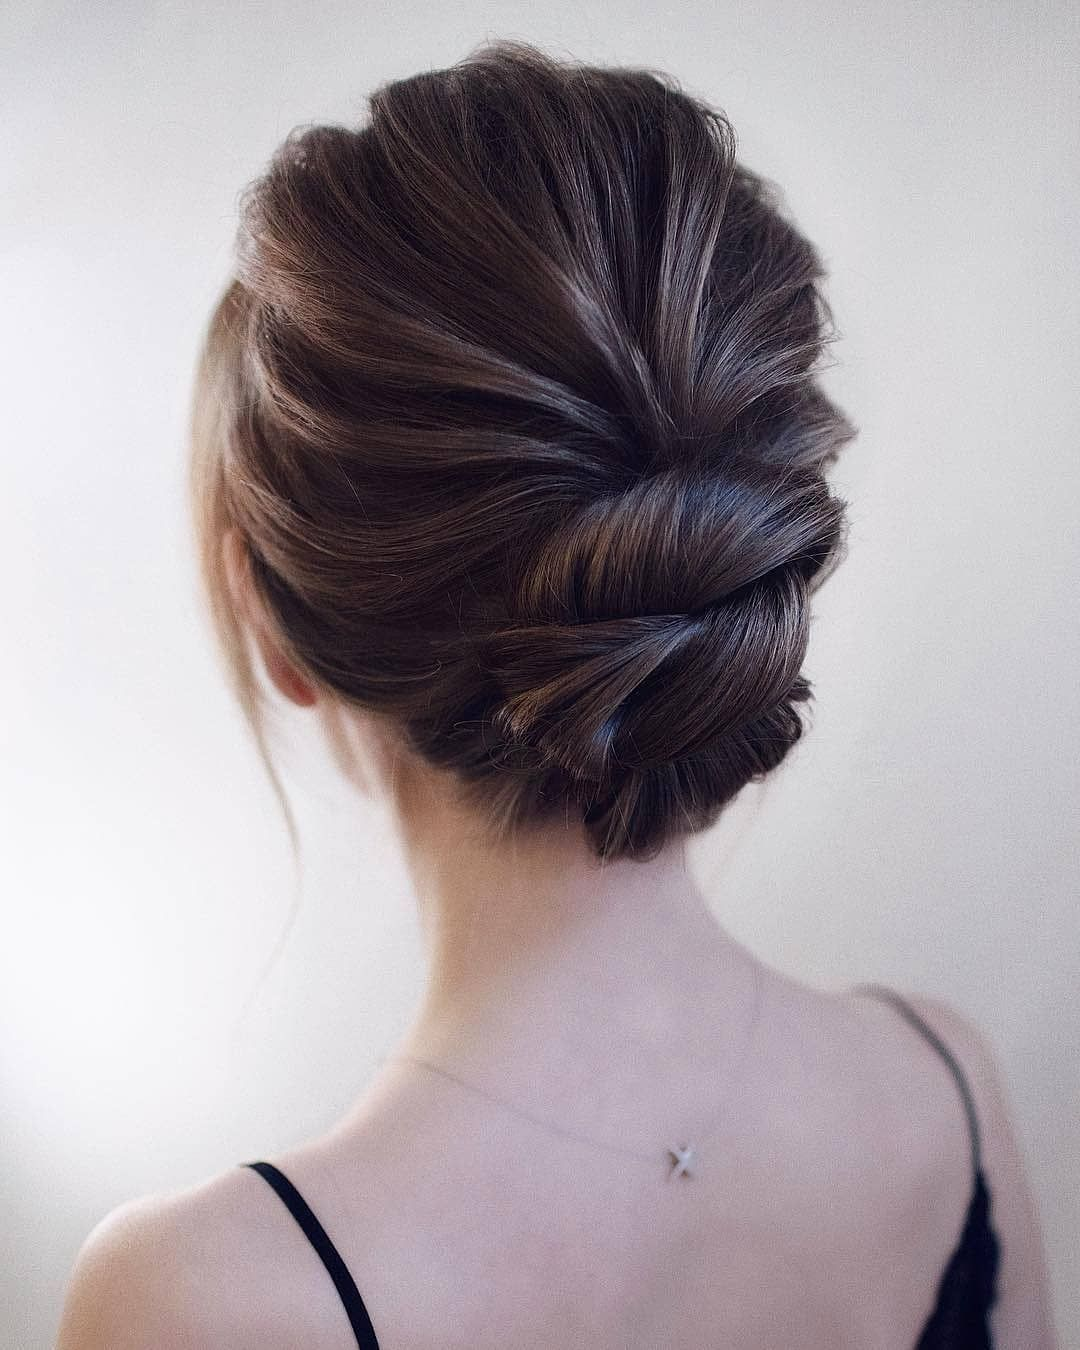 Frisur Standesamt Hairstyle Hairdo Weddinglook Wedding In 2019